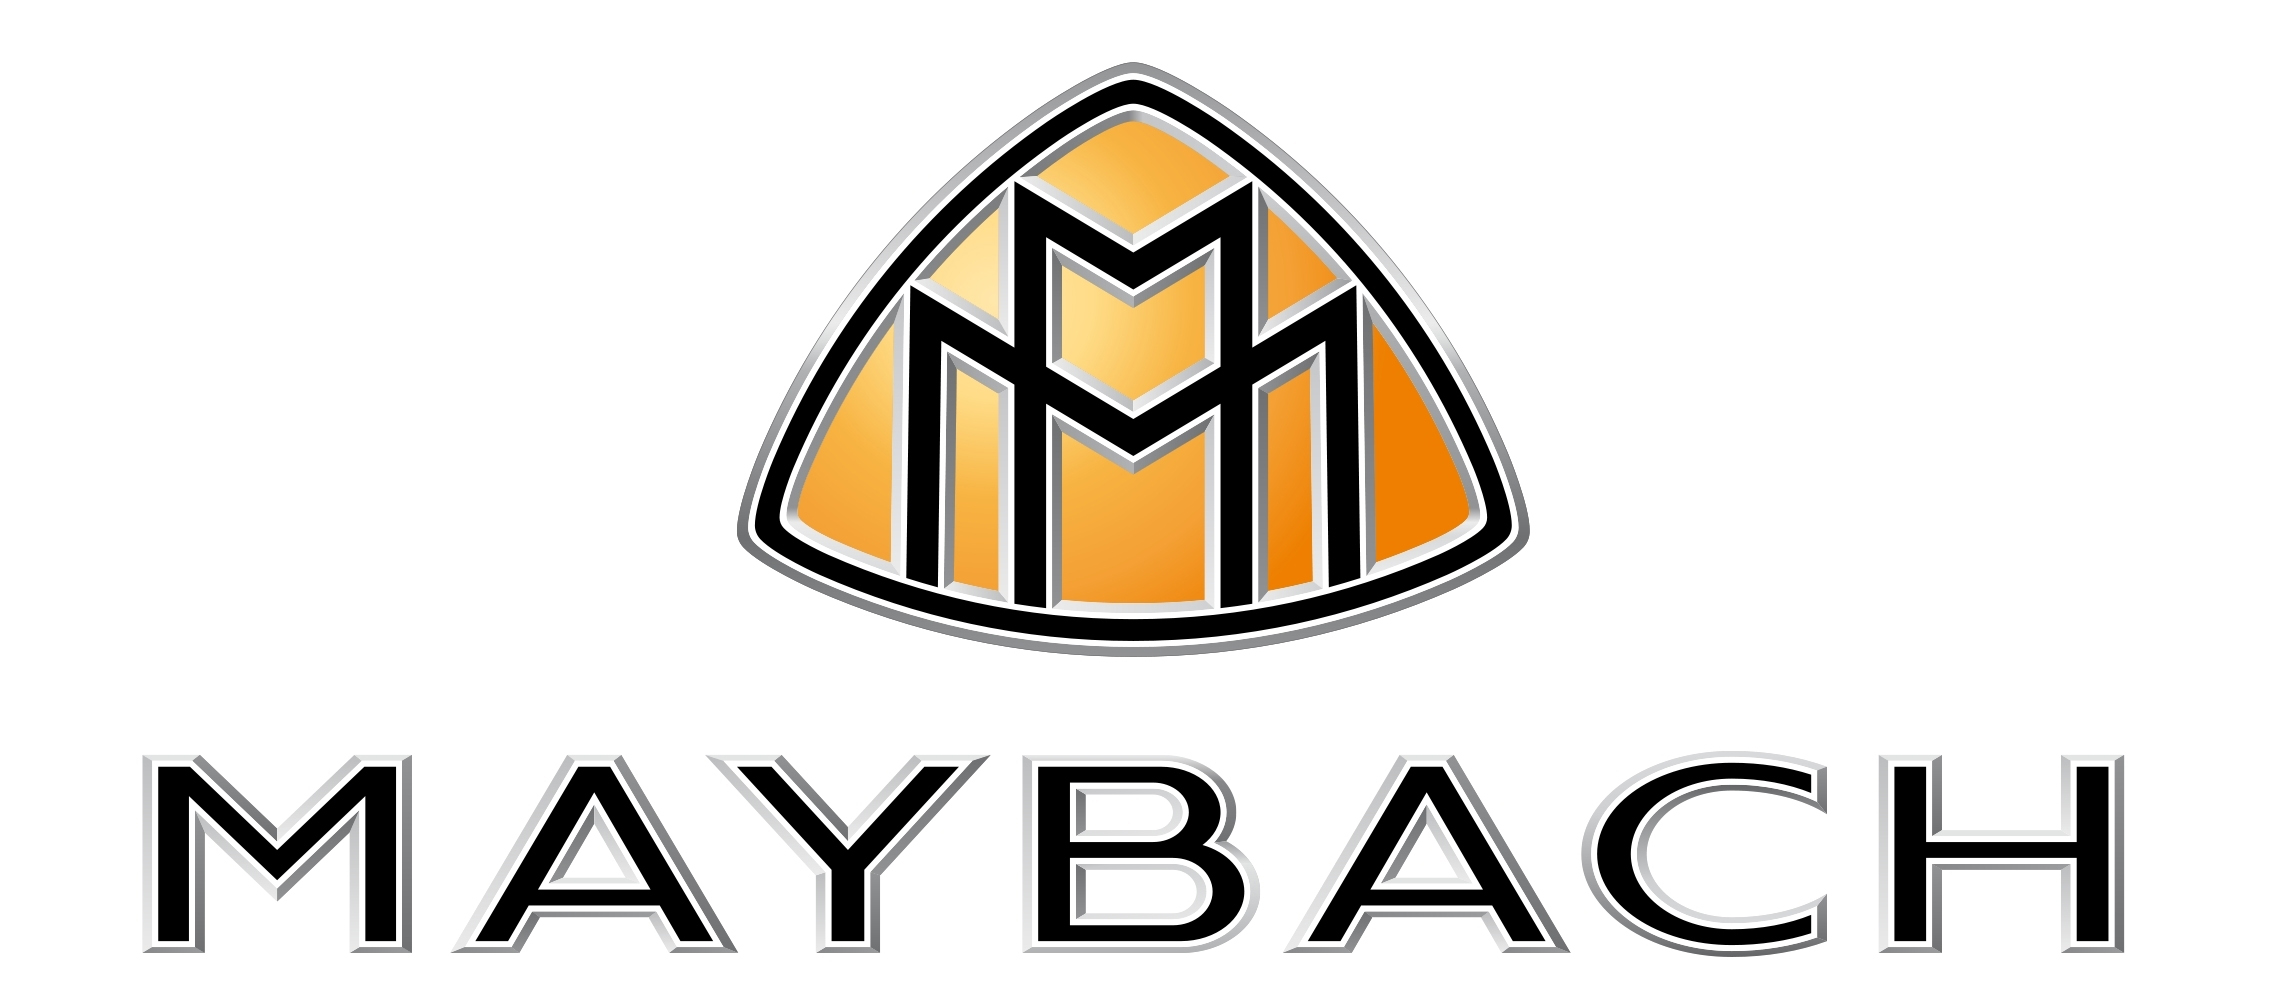 Maybach Symbol >> Maybach Logo Meaning and History, latest models | World Cars Brands